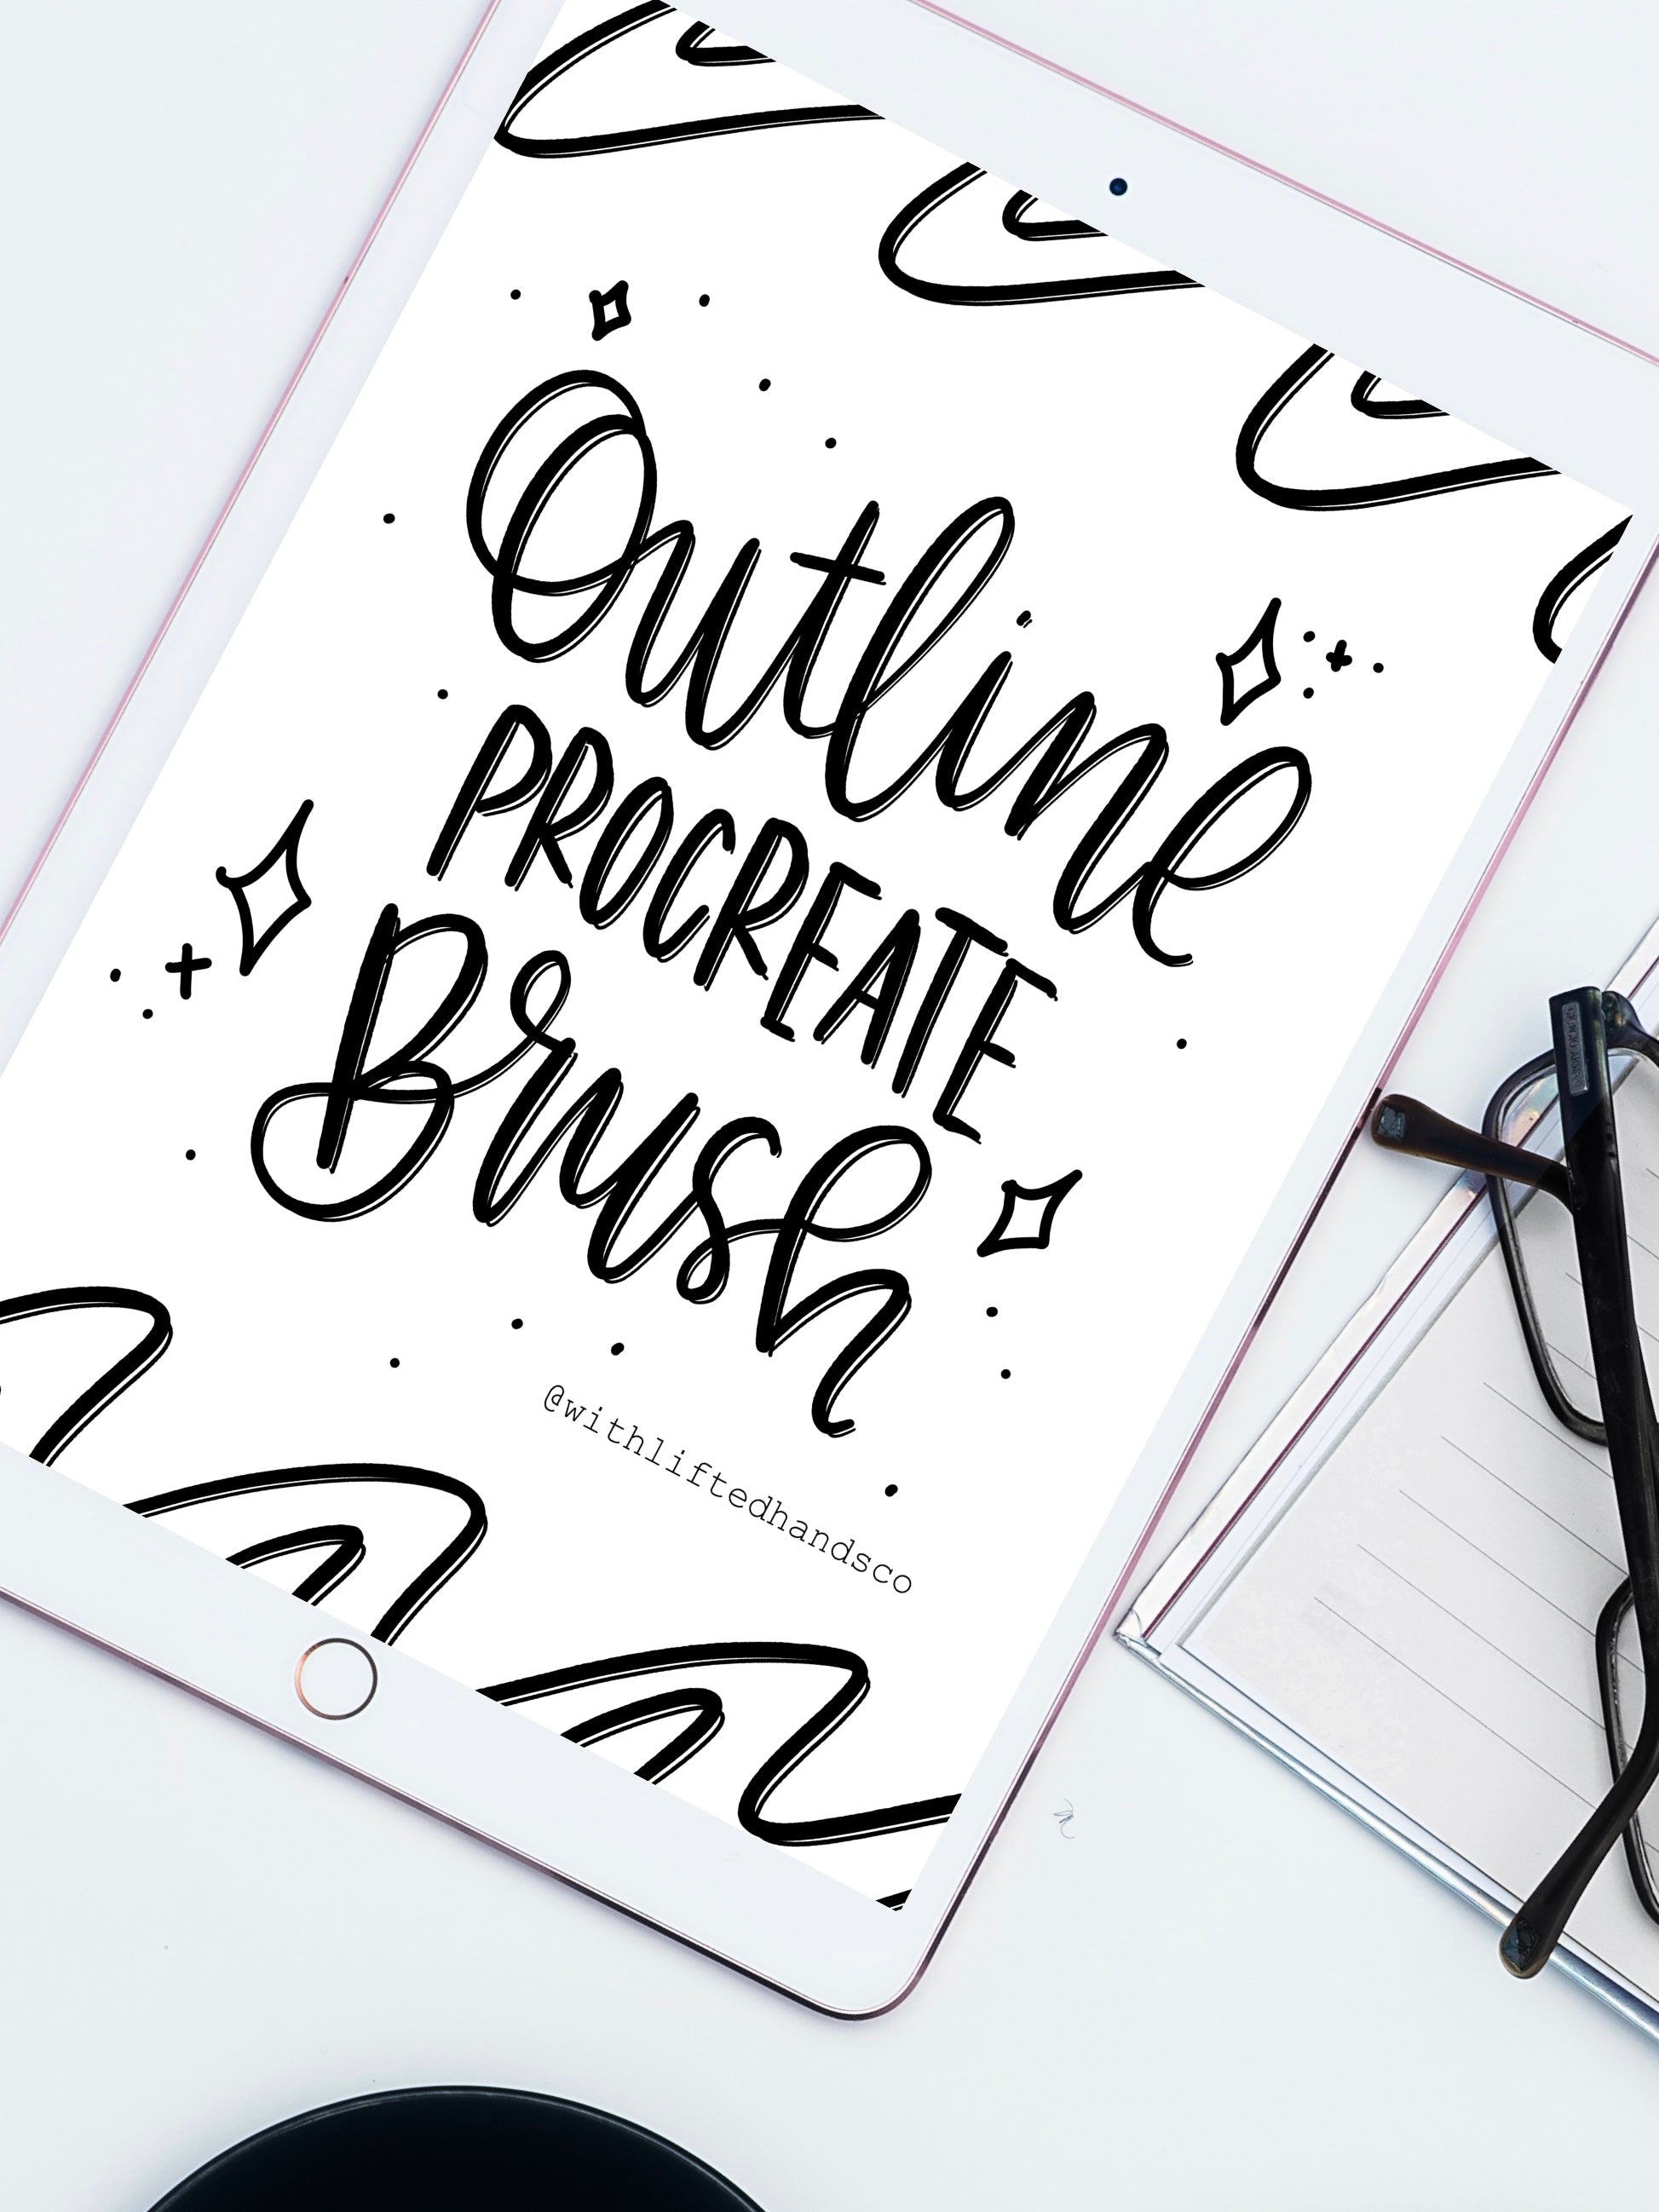 Outline procreate brush by with lifted hands co